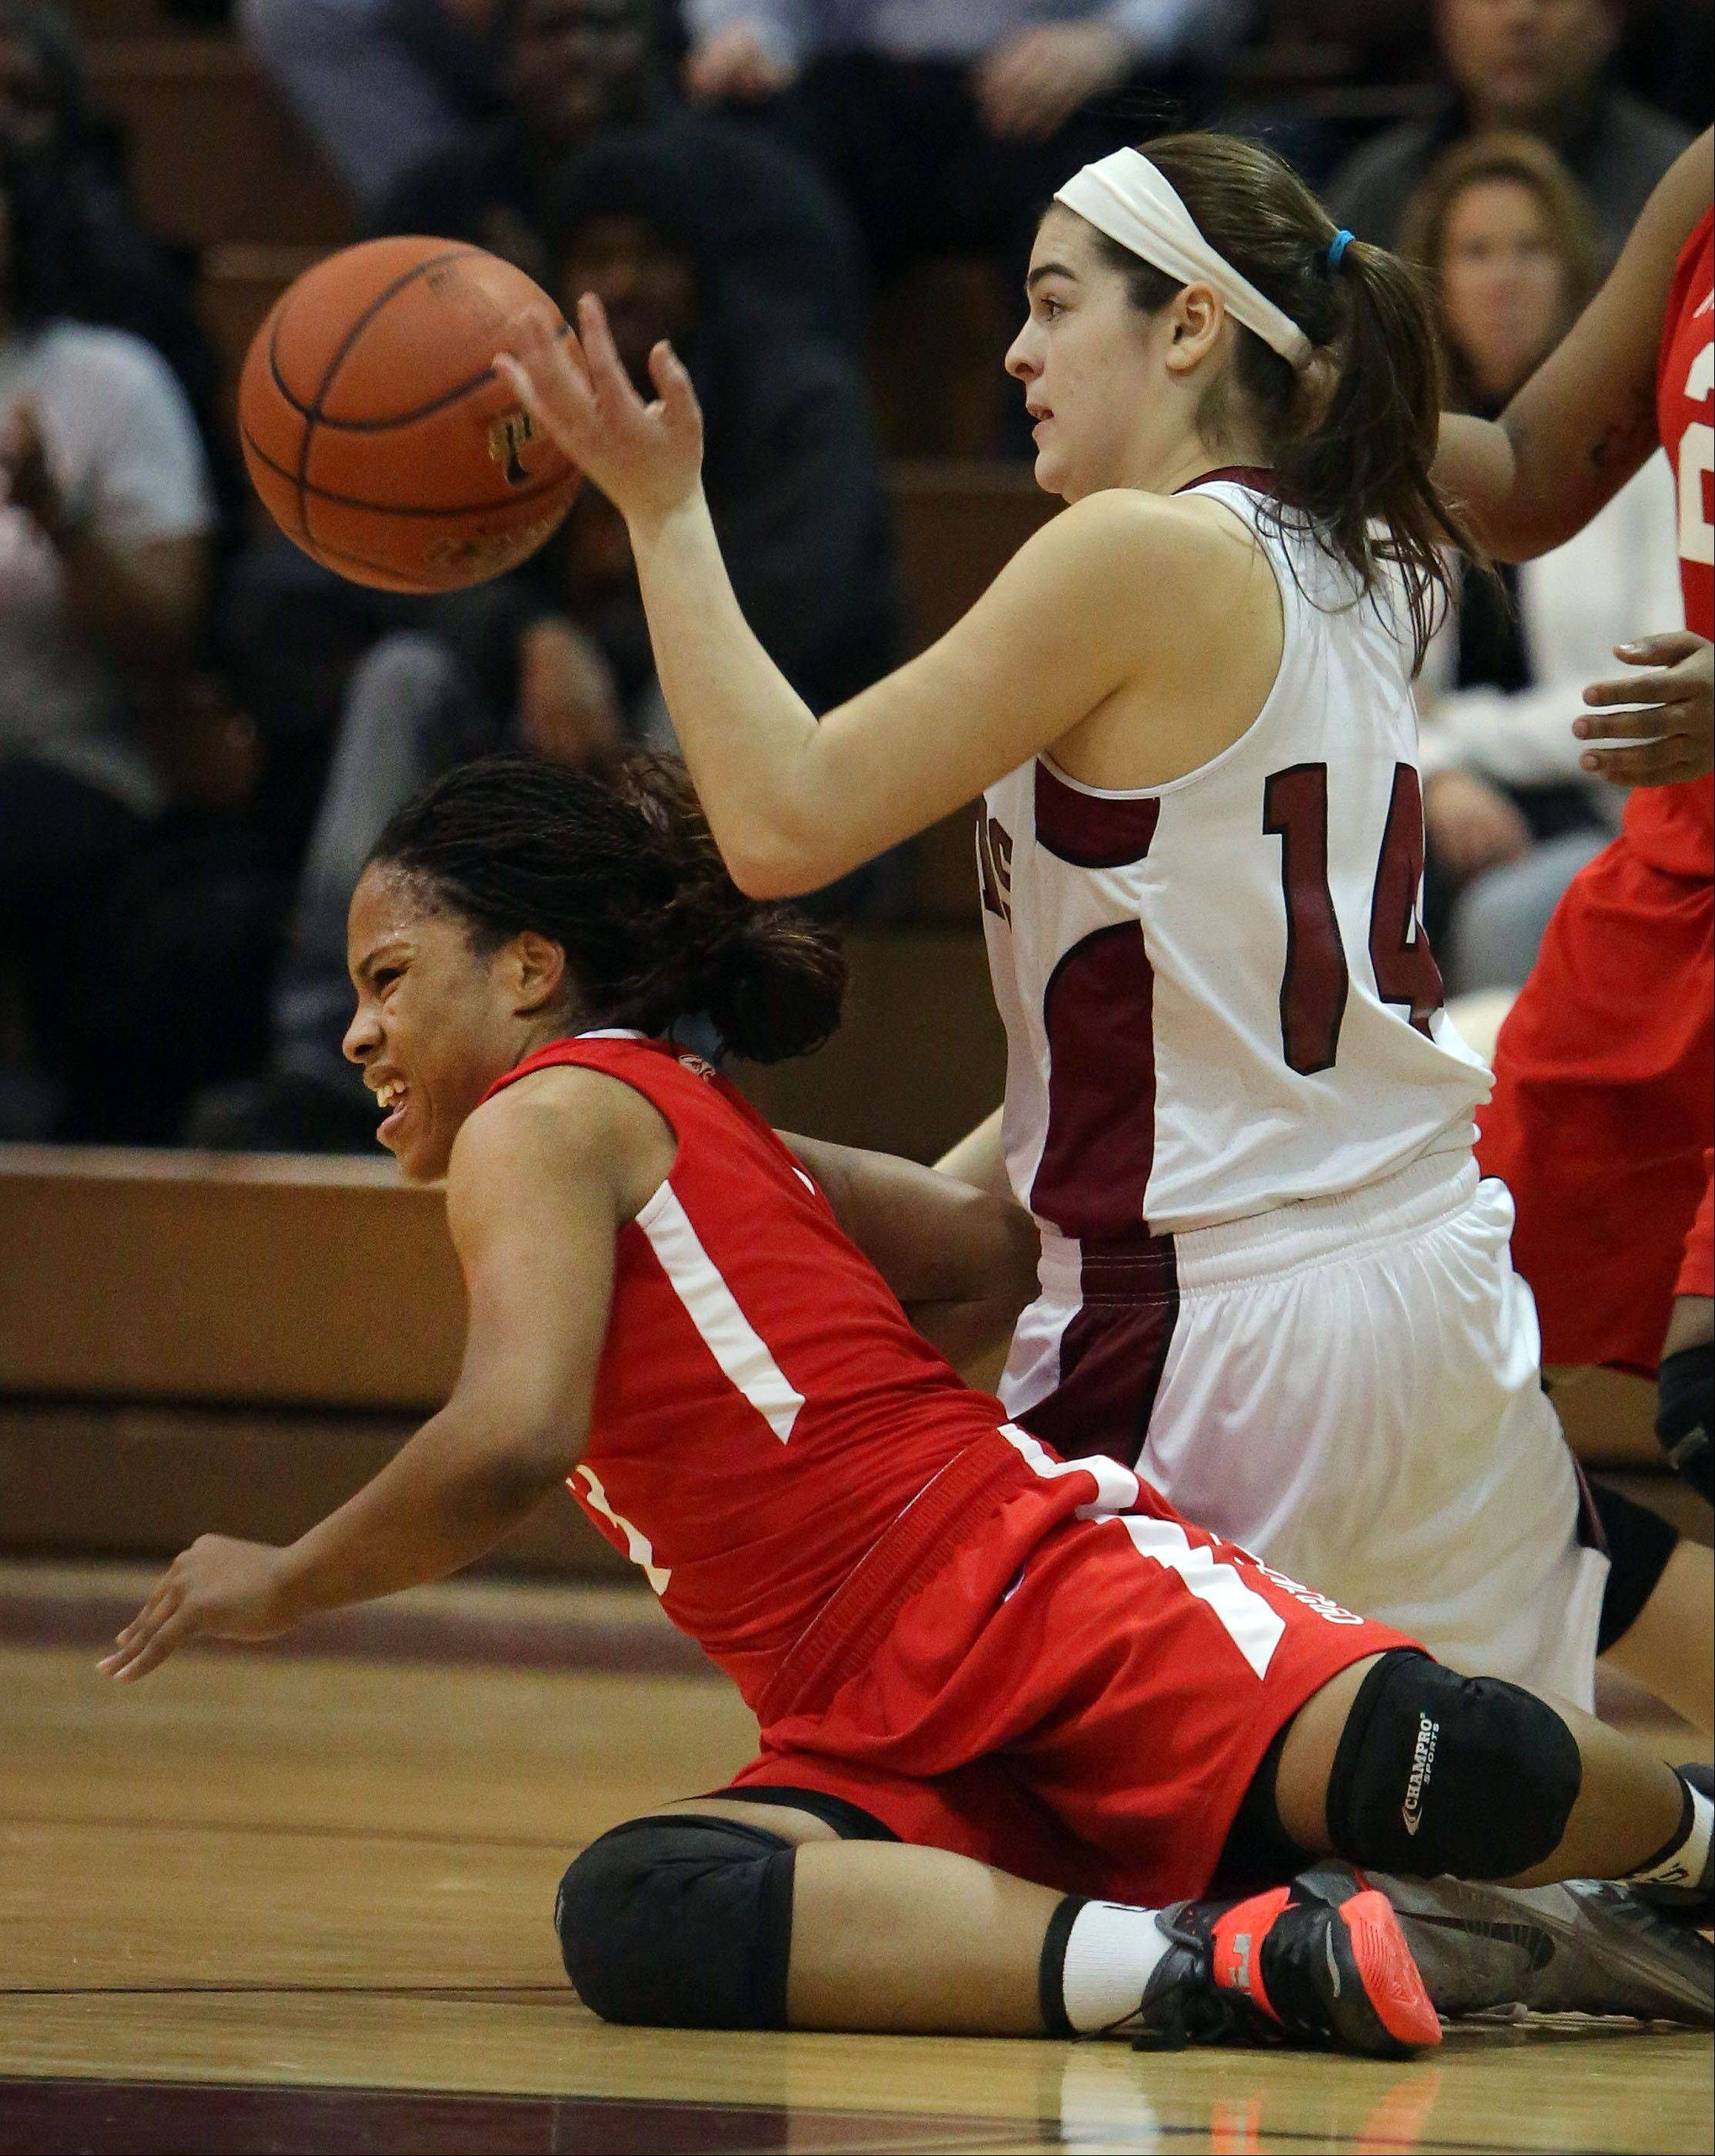 Antioch�s Amy Reiser, right, and North Chicago�s Alexis Means scramble for a loose ball on Wednesday night at Antioch.